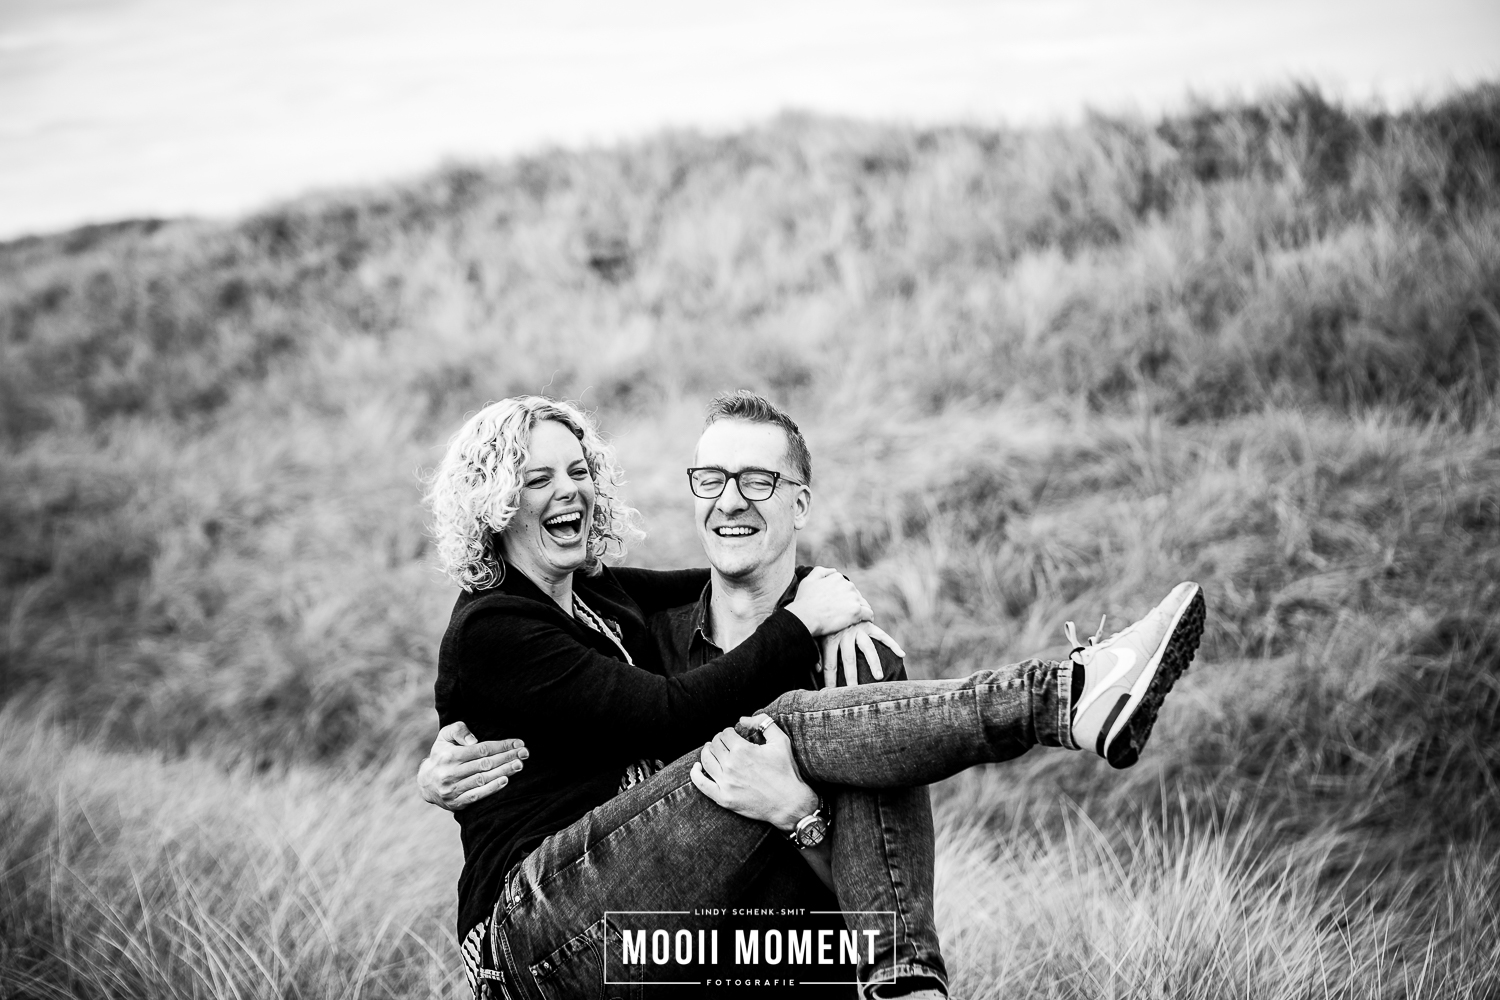 Loveshoot in de duinen van Hargen